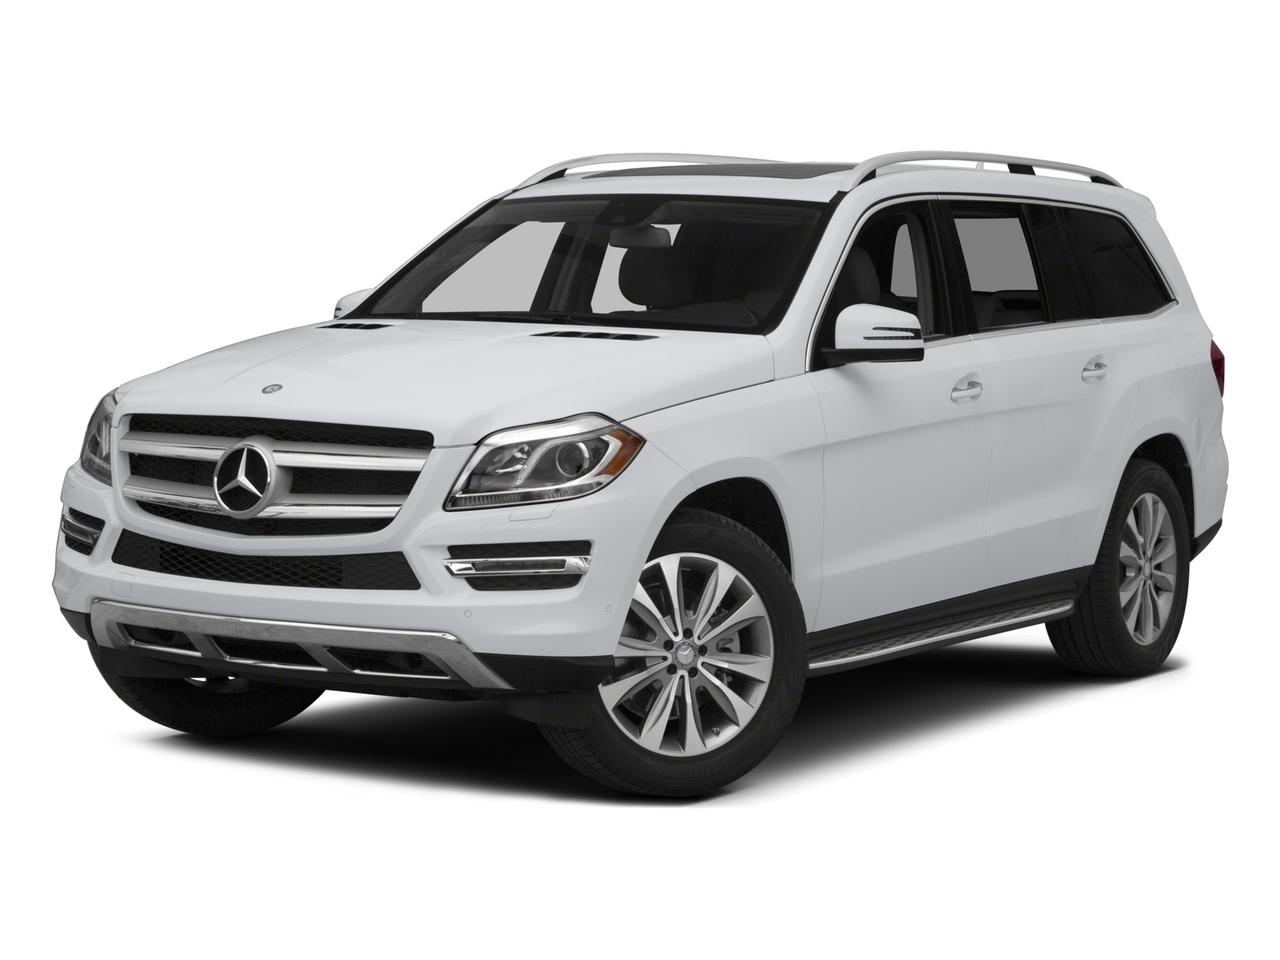 2015 Mercedes-Benz GL-Class Vehicle Photo in Portland, OR 97225